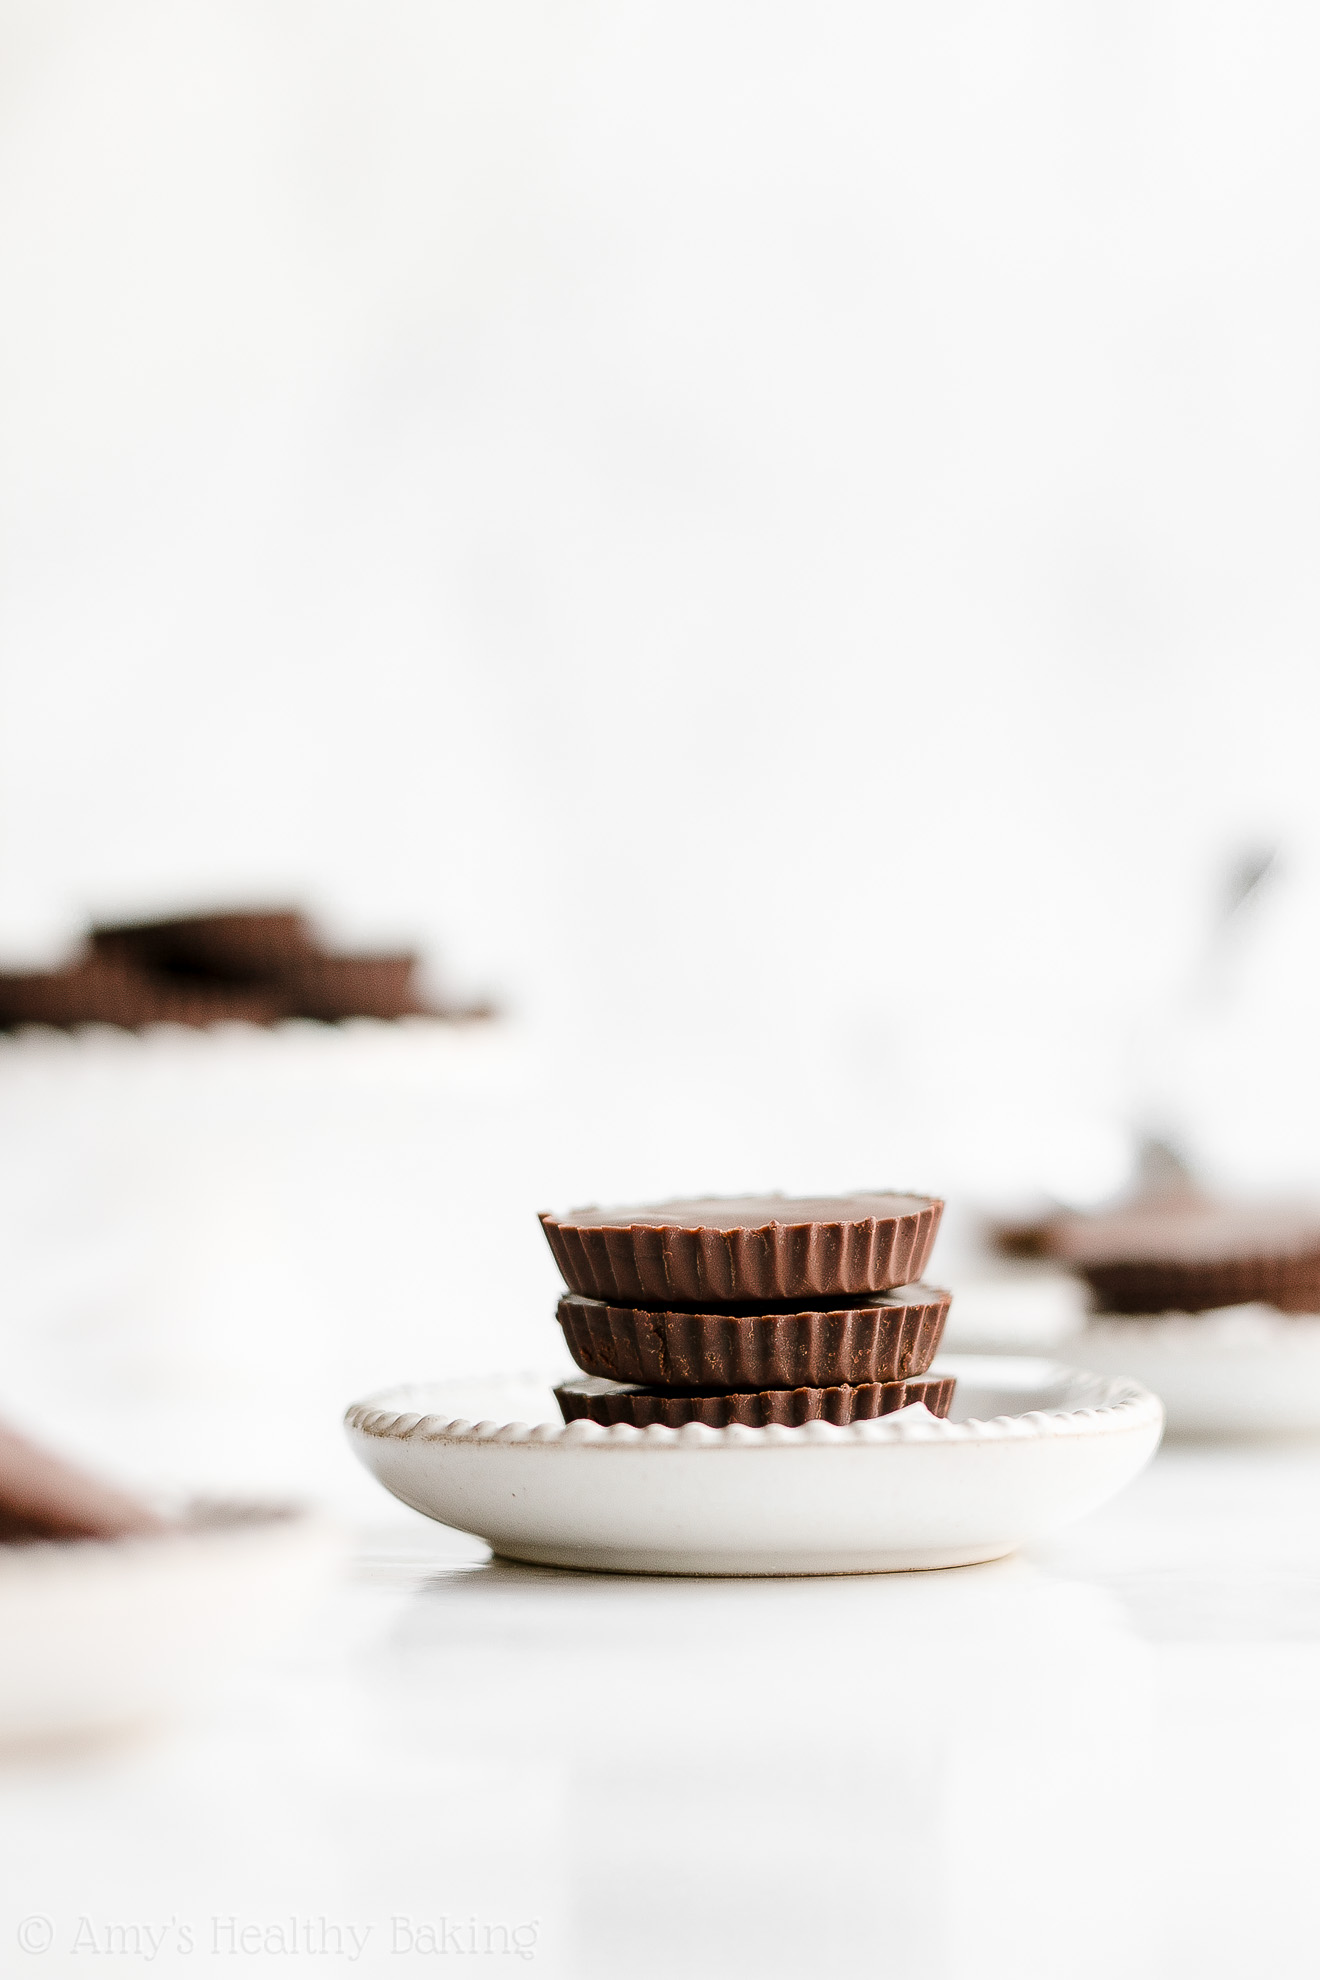 Simple Healthy Gluten Free Low Sugar Double Dark Chocolate Peanut Butter Cups